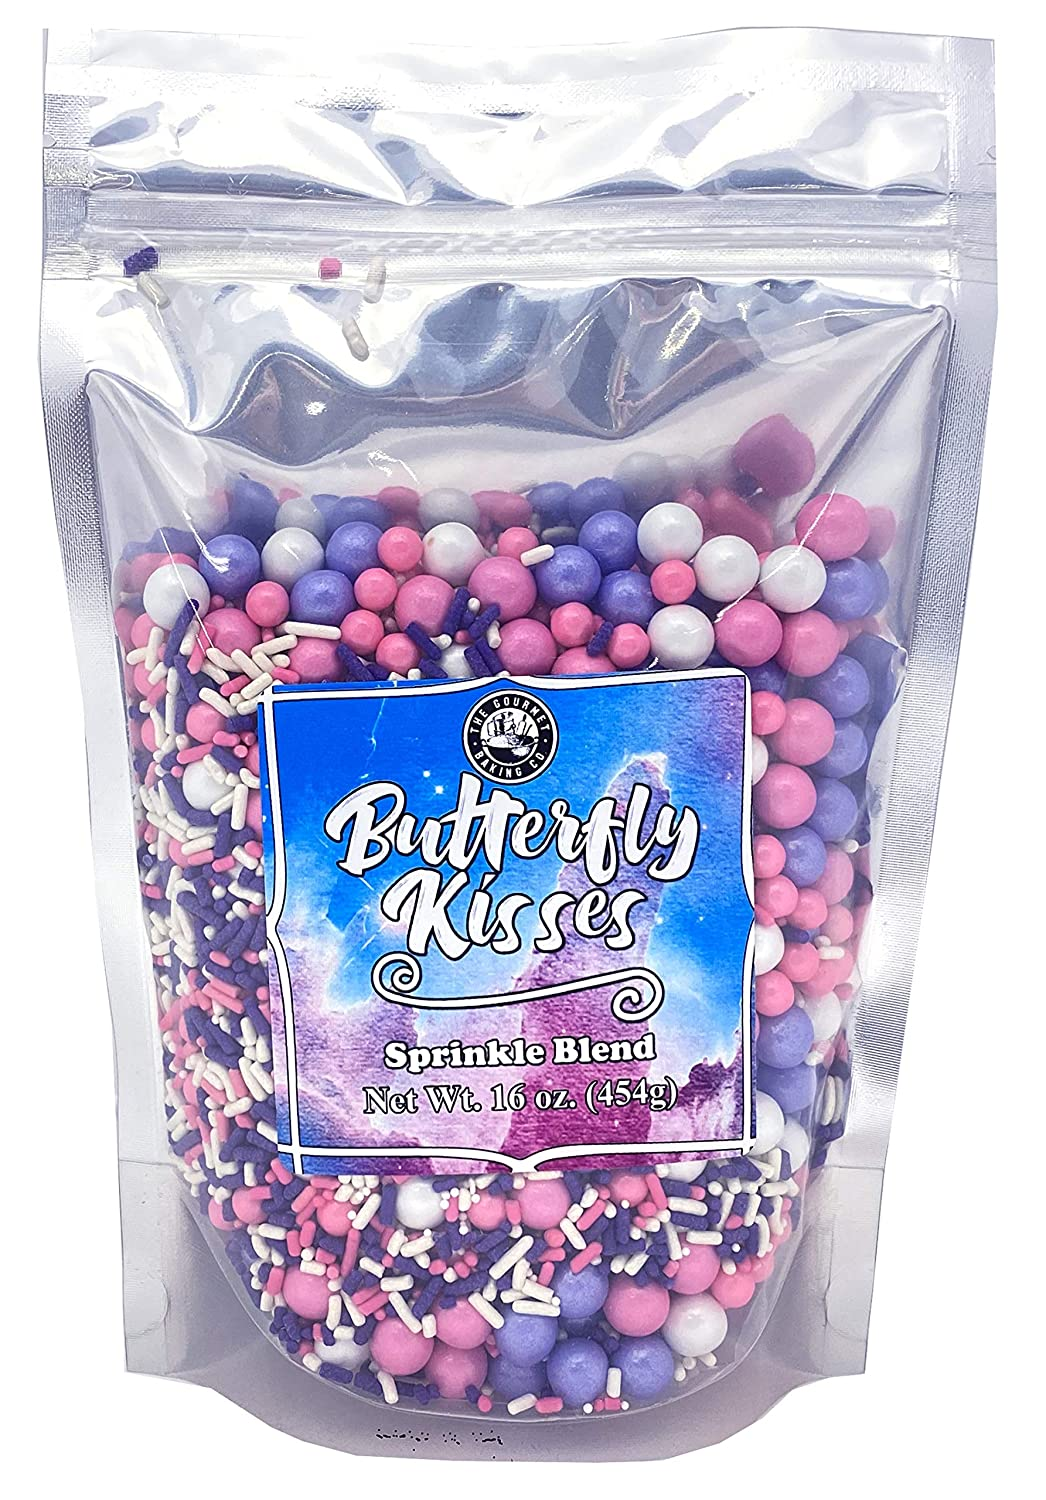 The Gourmet Baking Company Butterfly Kisses Sprinkles – 1 Pound Bulk Purple and Pink Sprinkles – Fancy Sprinkles